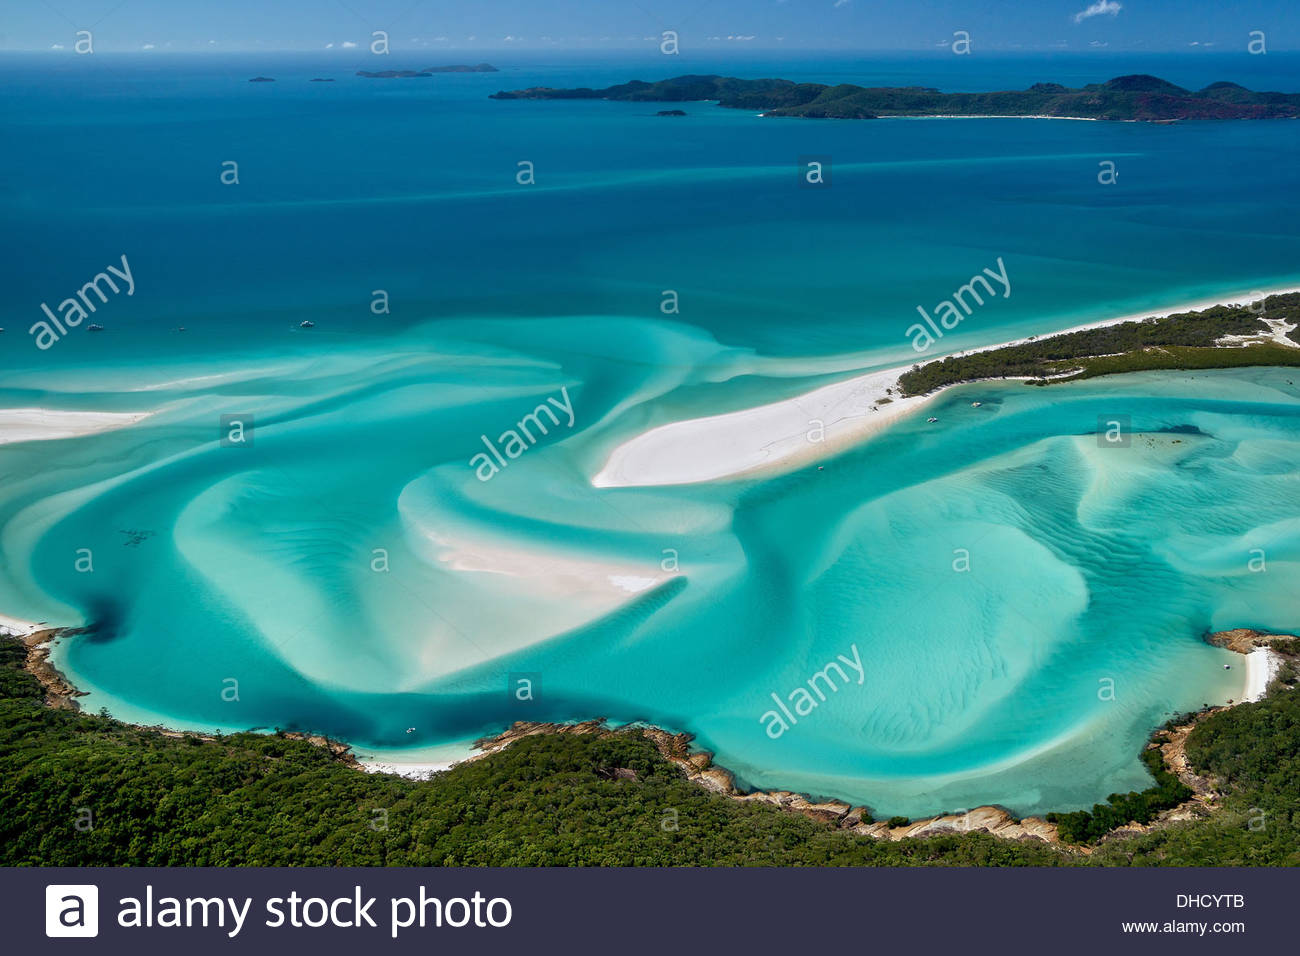 Hill Inlet and whitehaven beach on Whitsunday Island - Whitsundays - Australia - Stock Image